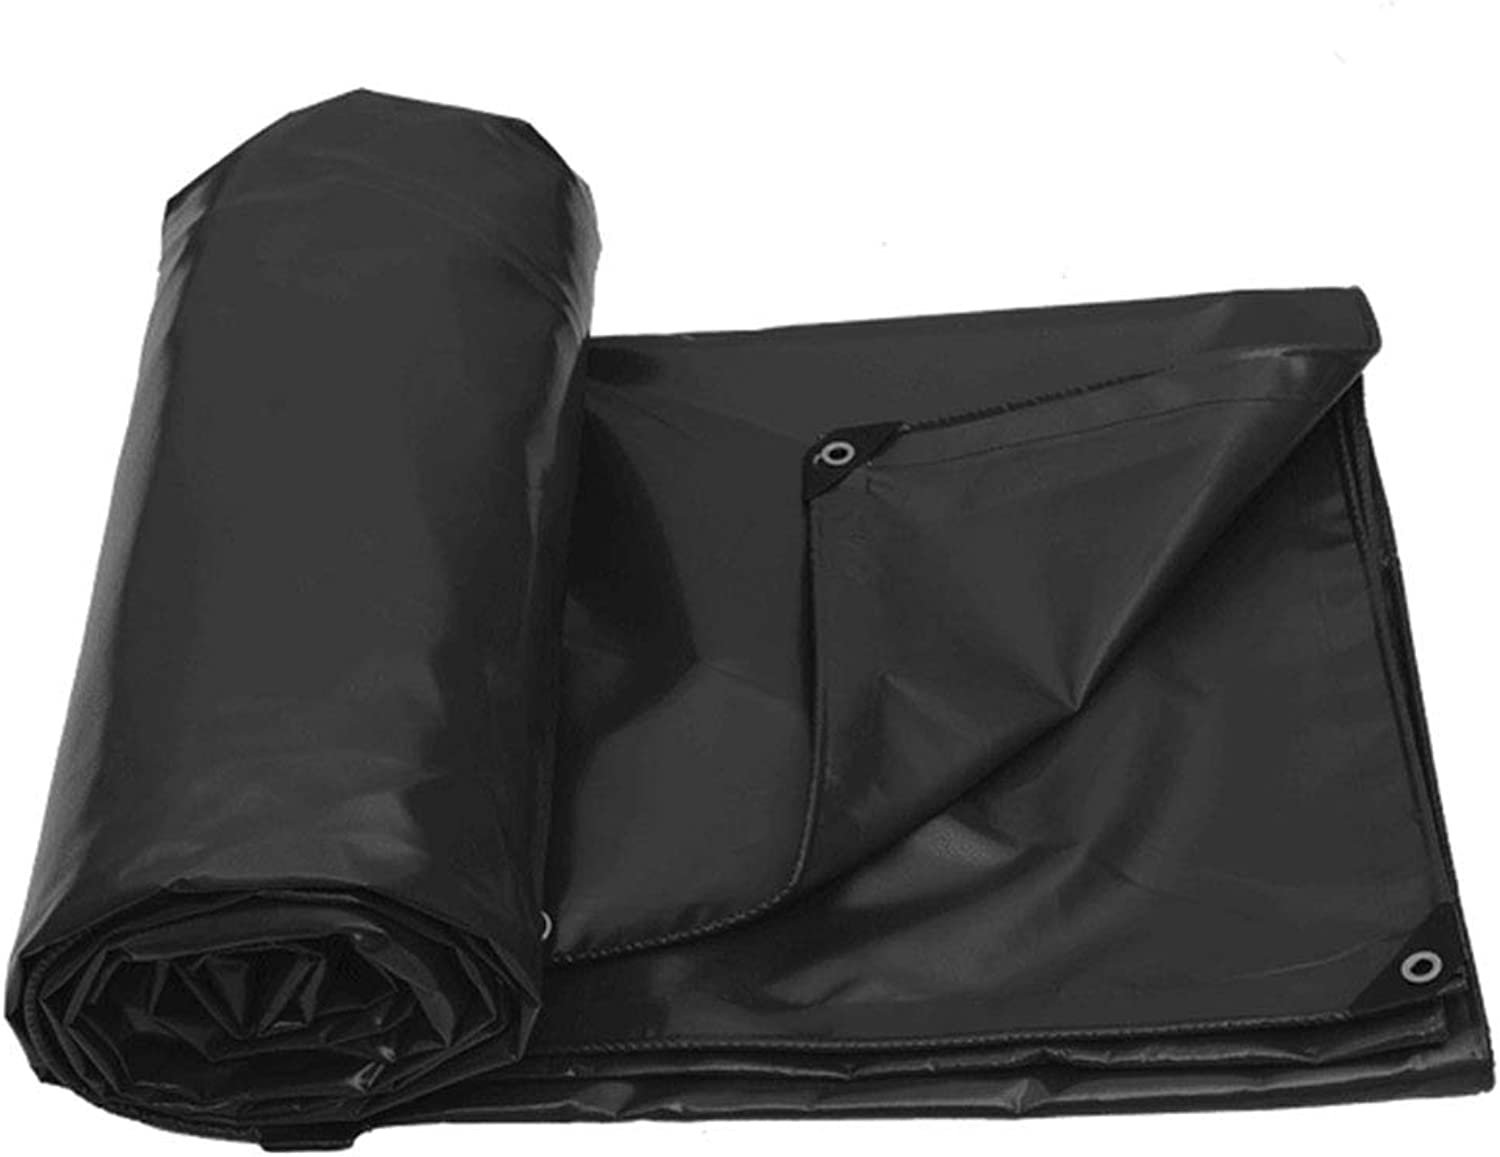 Awnings Sun Visor rain Cloth rain Cloth Tarpaulin Canvas Truck Canopy Tarpaulin Waterproof Thick Plastic Sheet (color   Black, Size   3  3m)